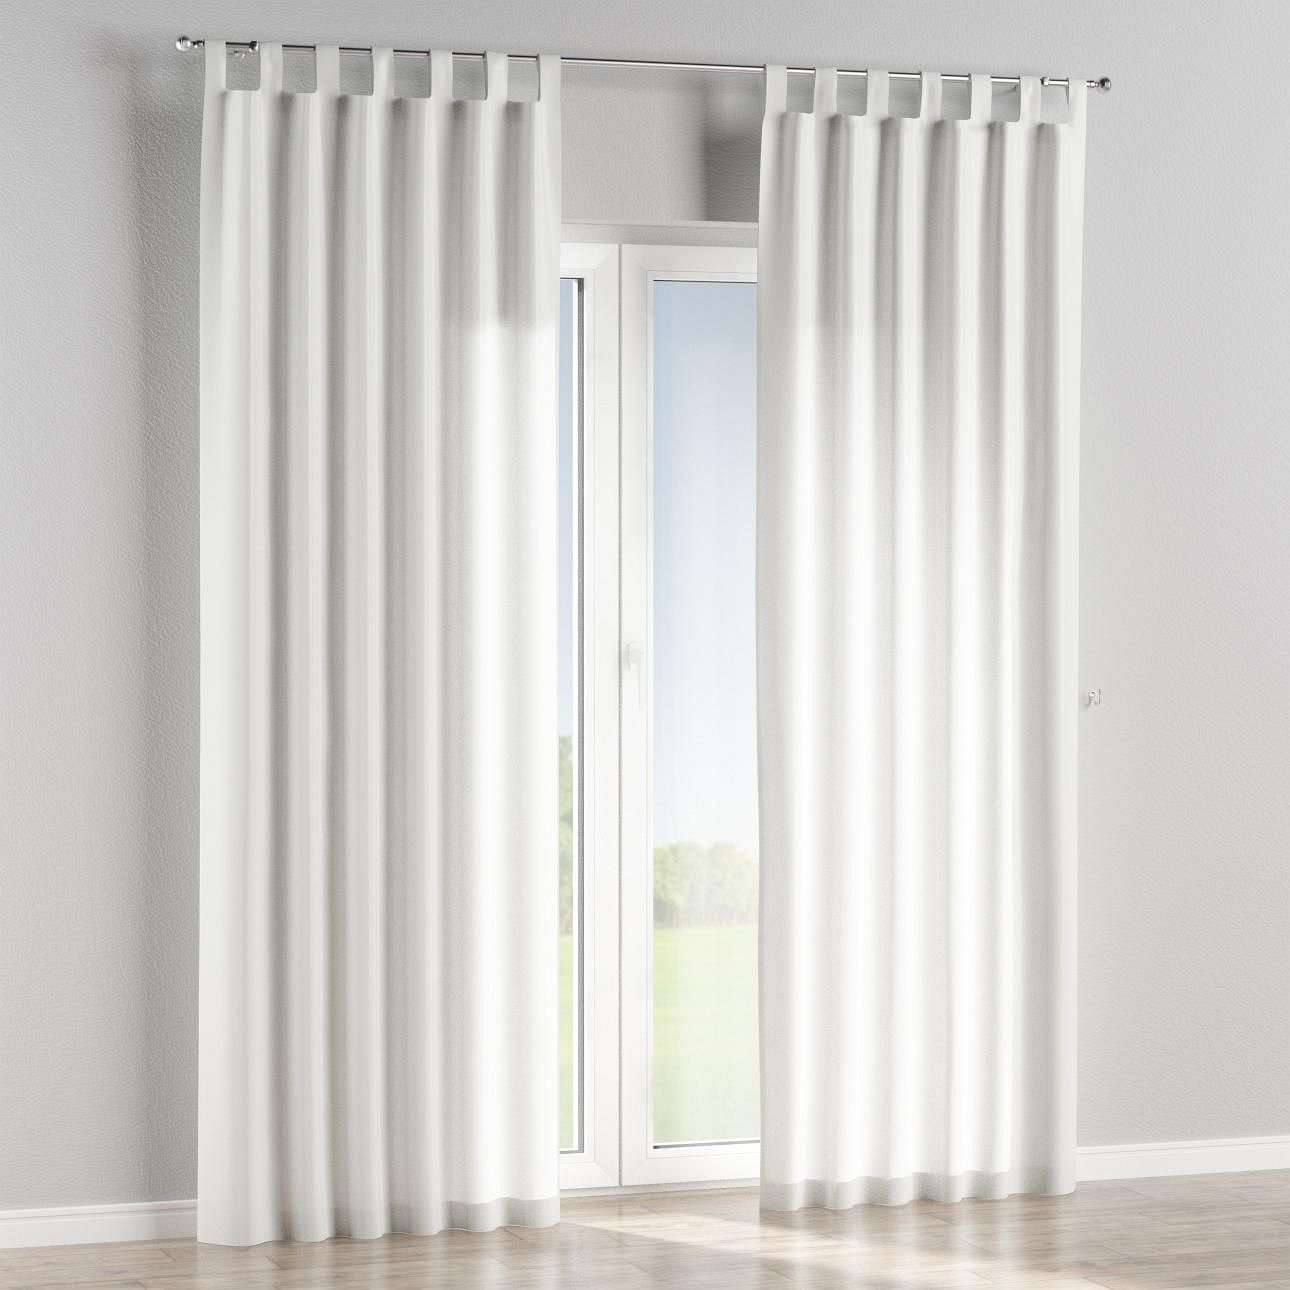 Tab top lined curtains in collection Jupiter, fabric: 127-02